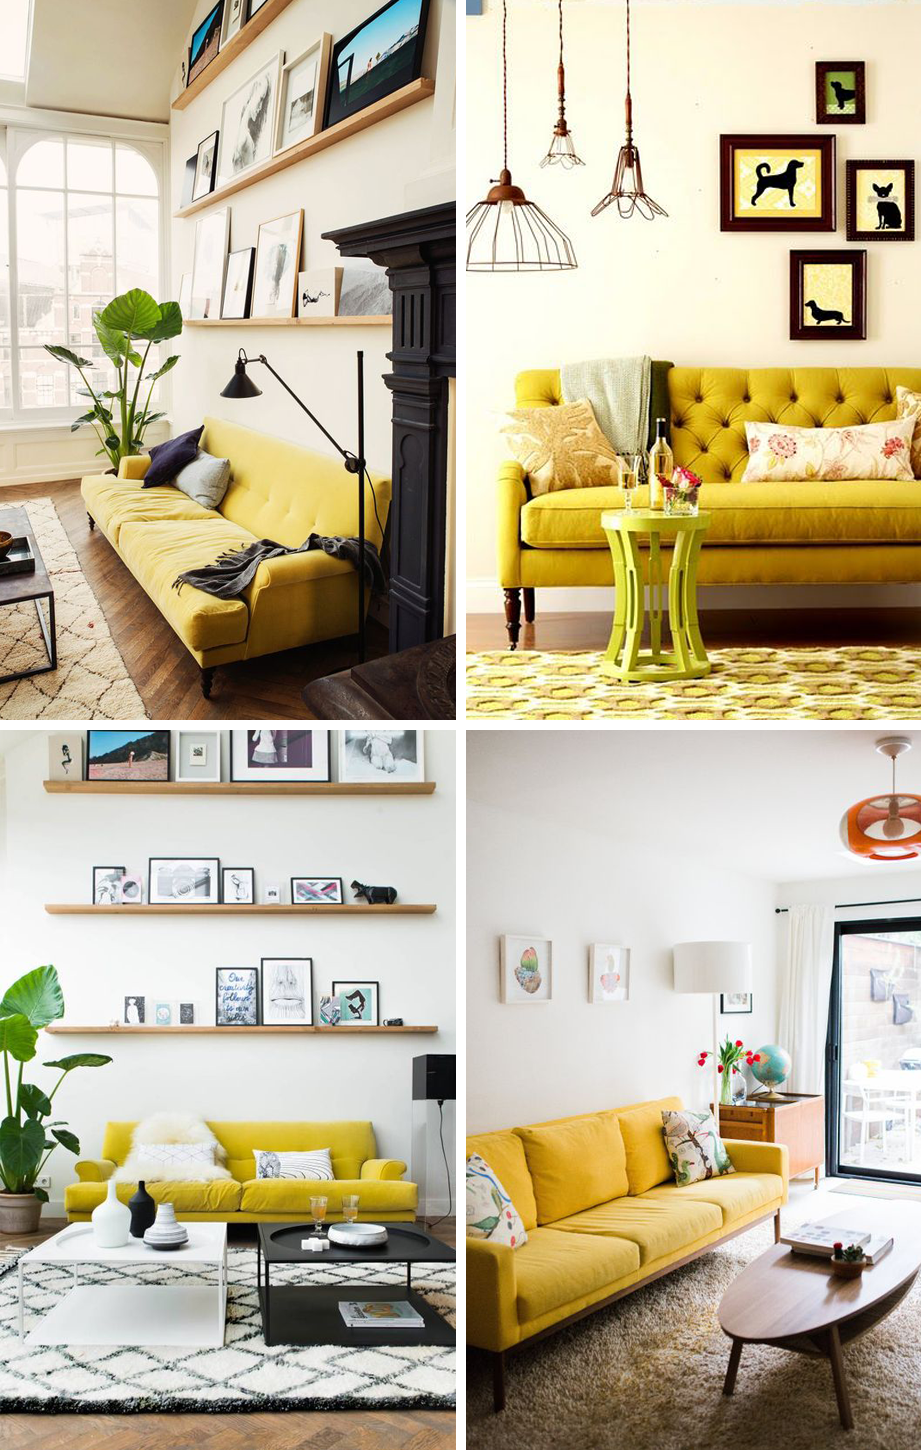 24 Colorful Couches That Make A Statement Www Thegroupinc Com Zheltye Gostinye Dom Gostinaya #yellow #couch #living #room #ideas